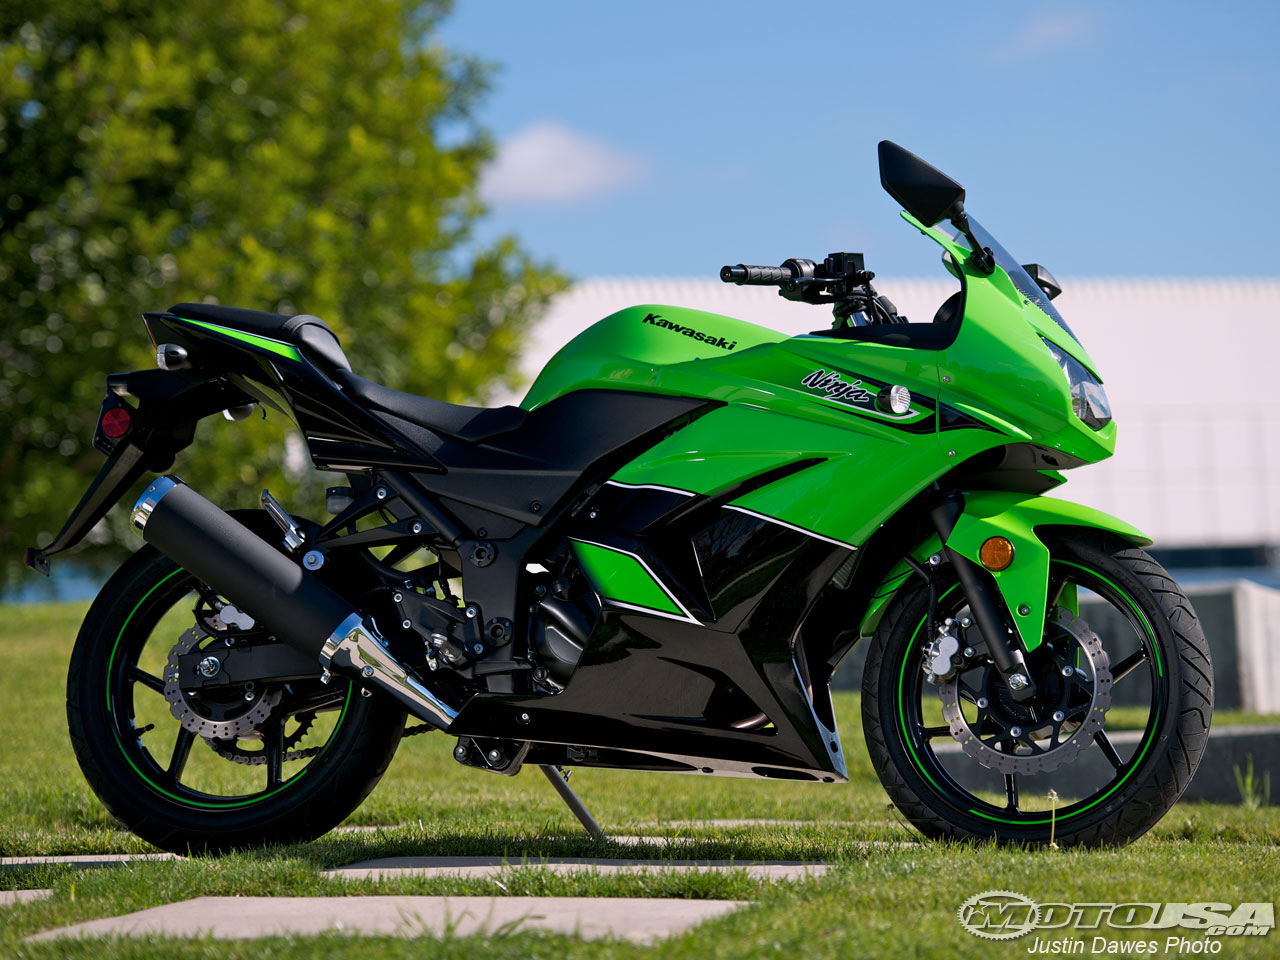 Bikispecial Kawasaki Ninja R on Honda Cbr Wallpaper